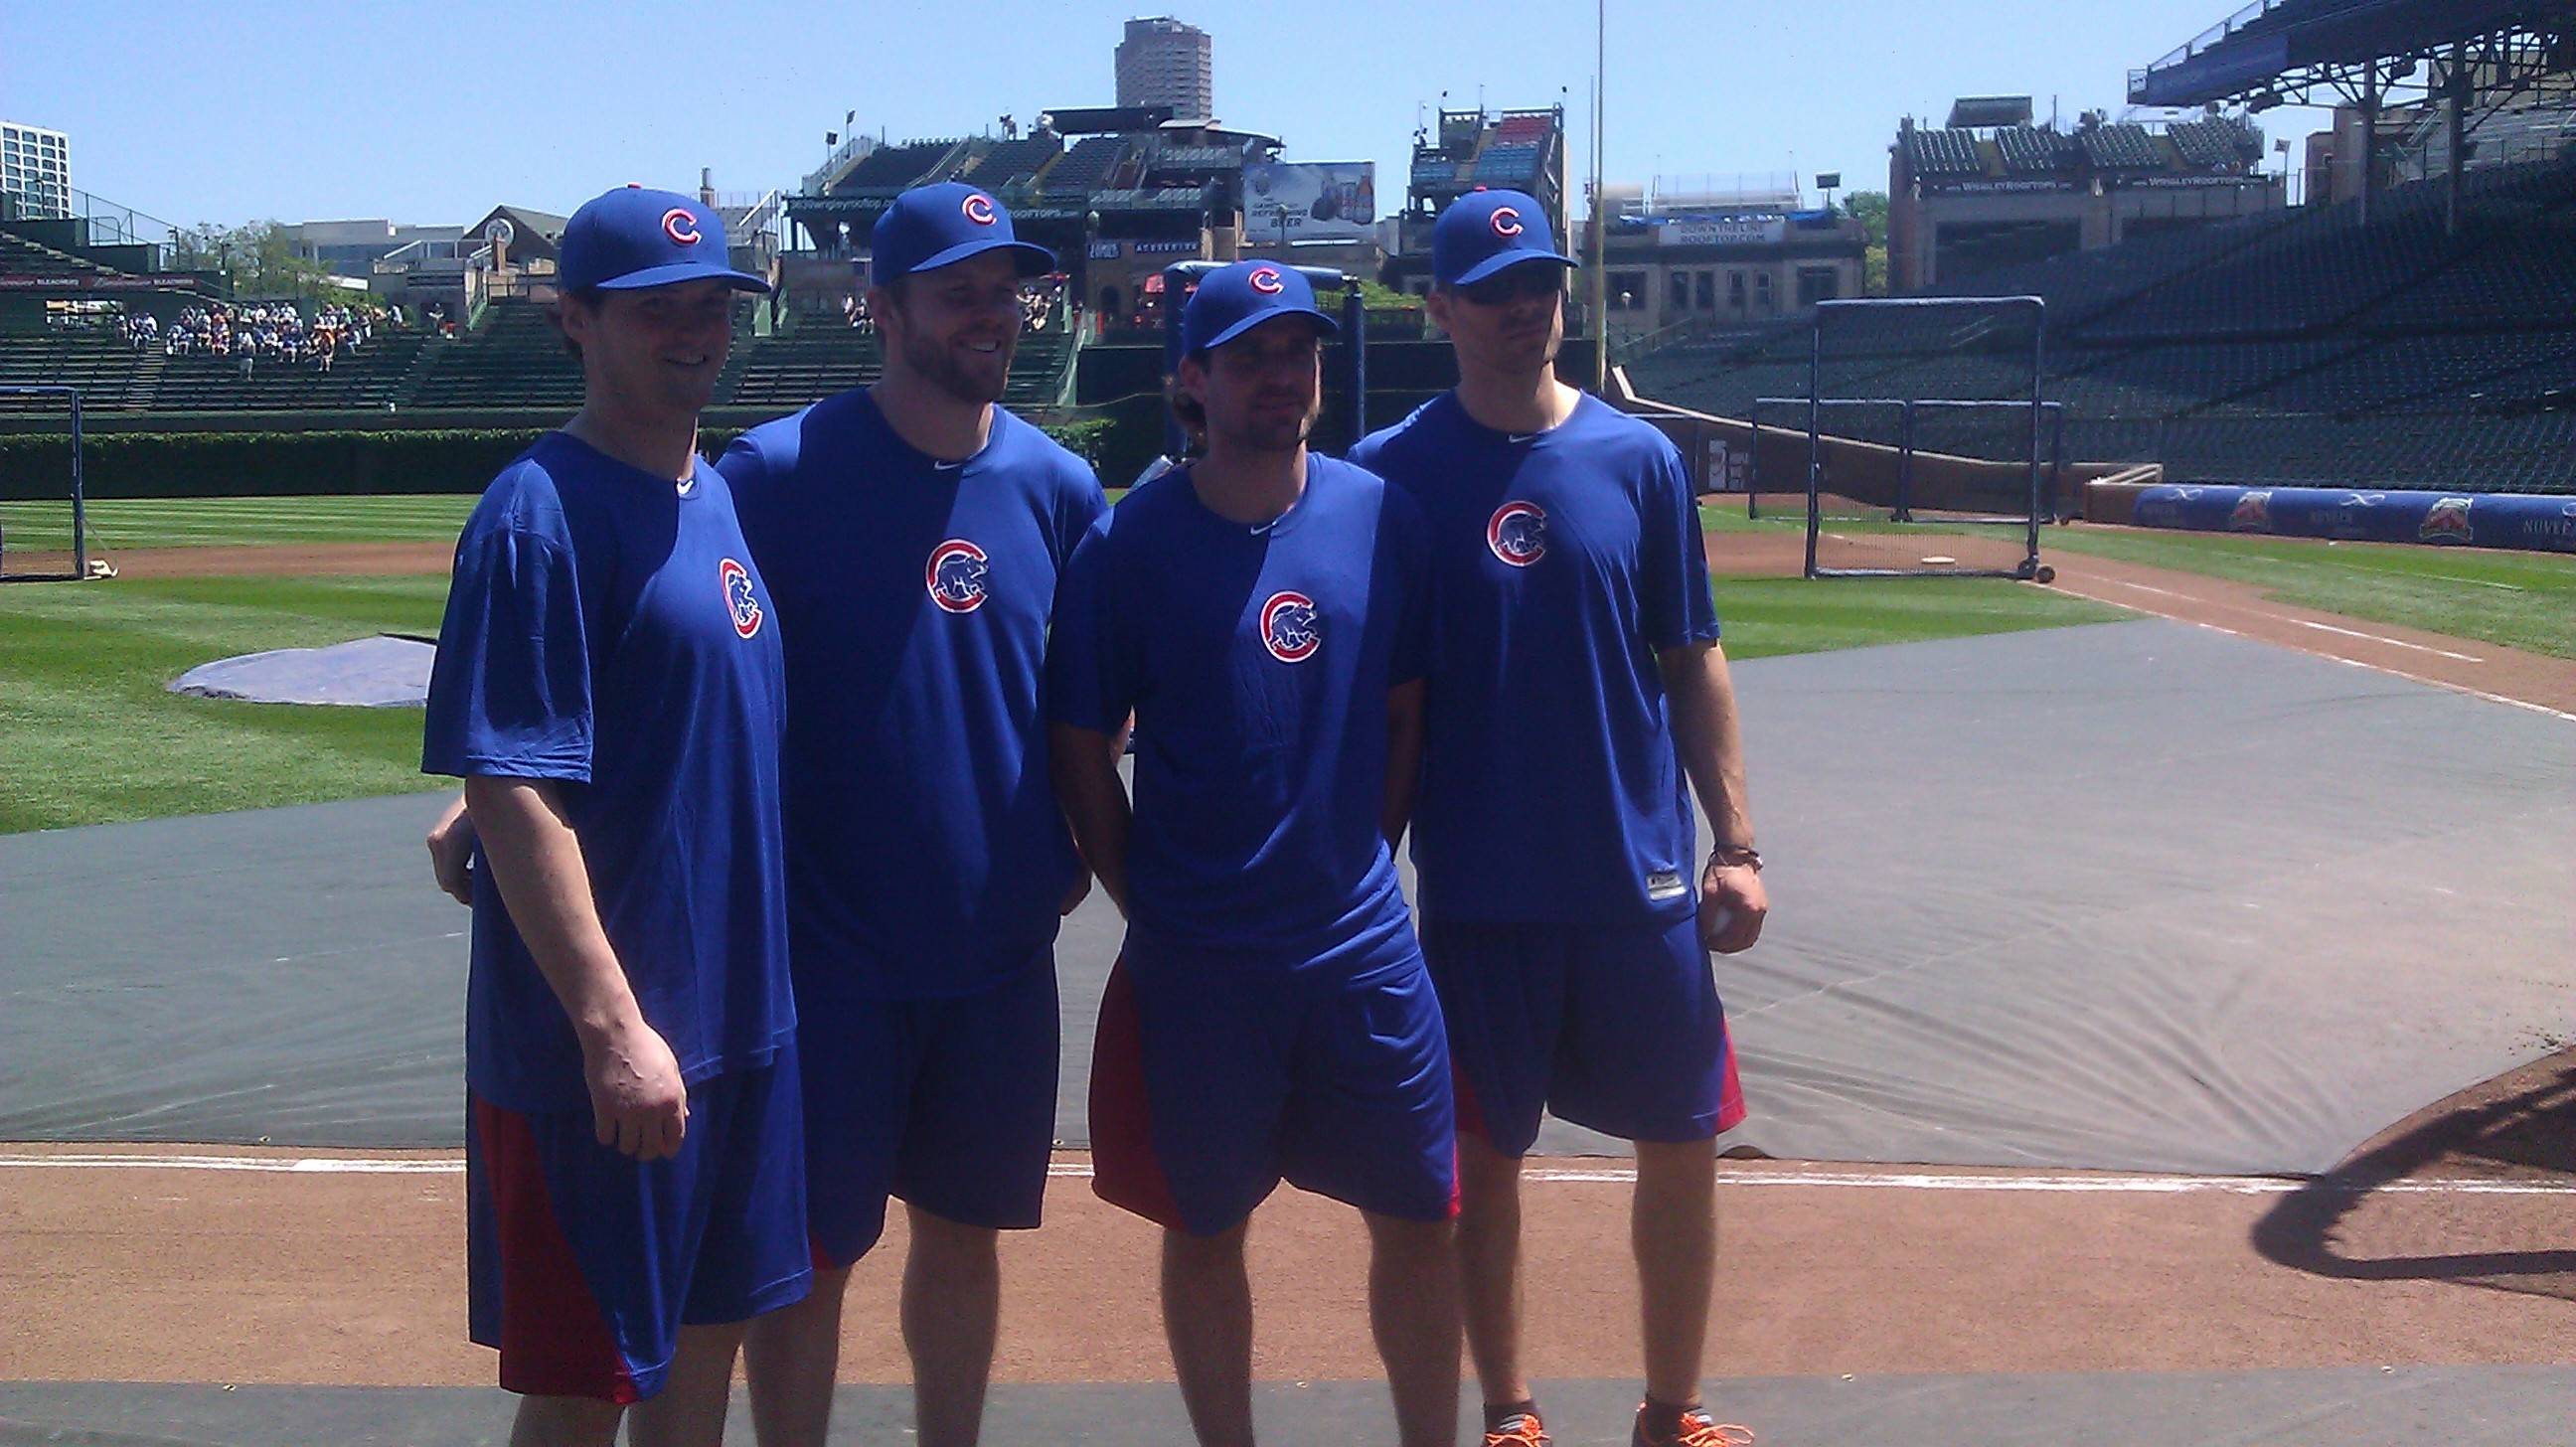 Hawks feel the love from fans at Wrigley